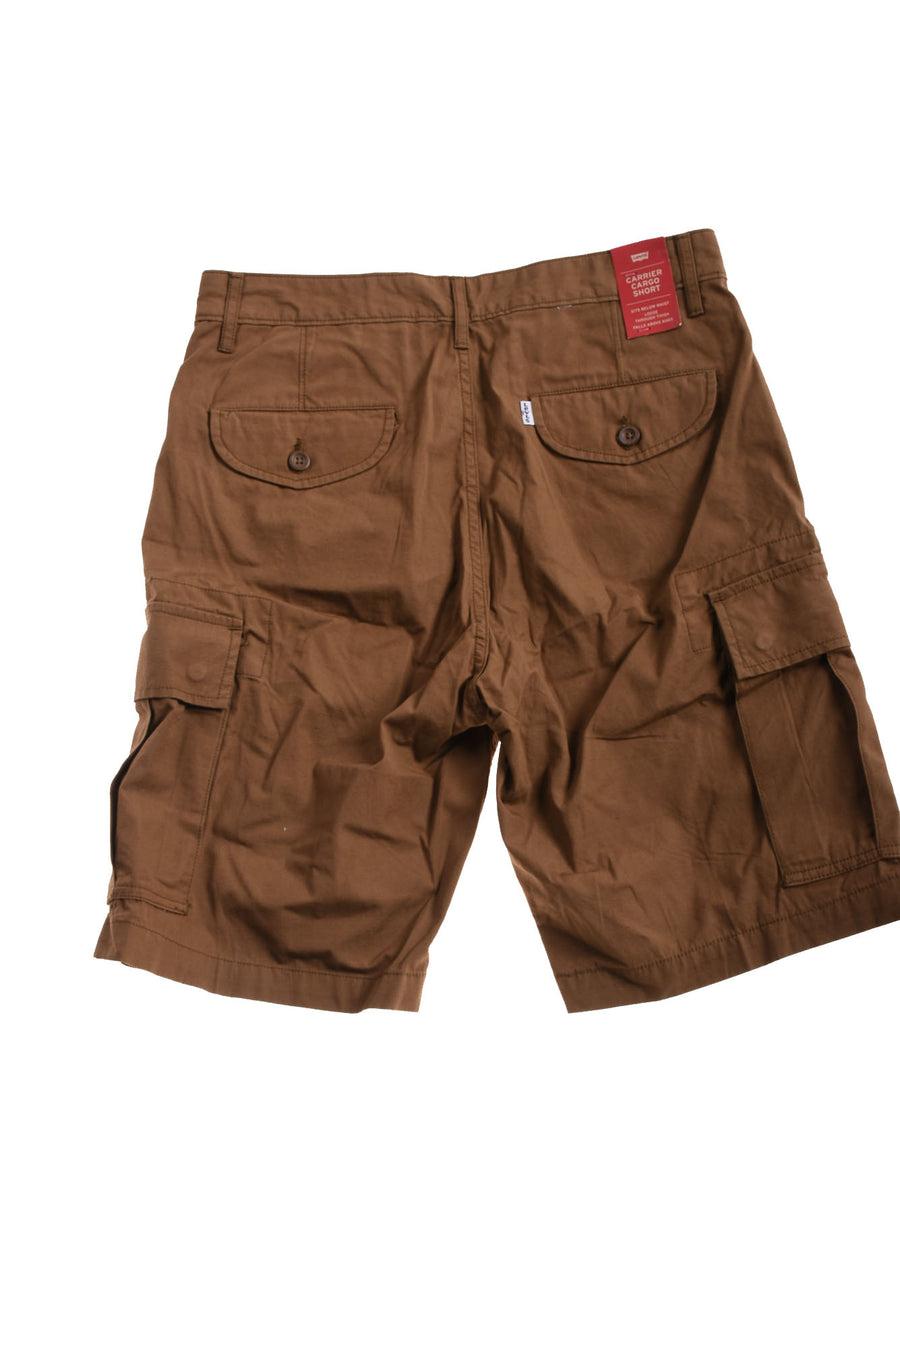 USED Levi's Men's Shorts Brown 29